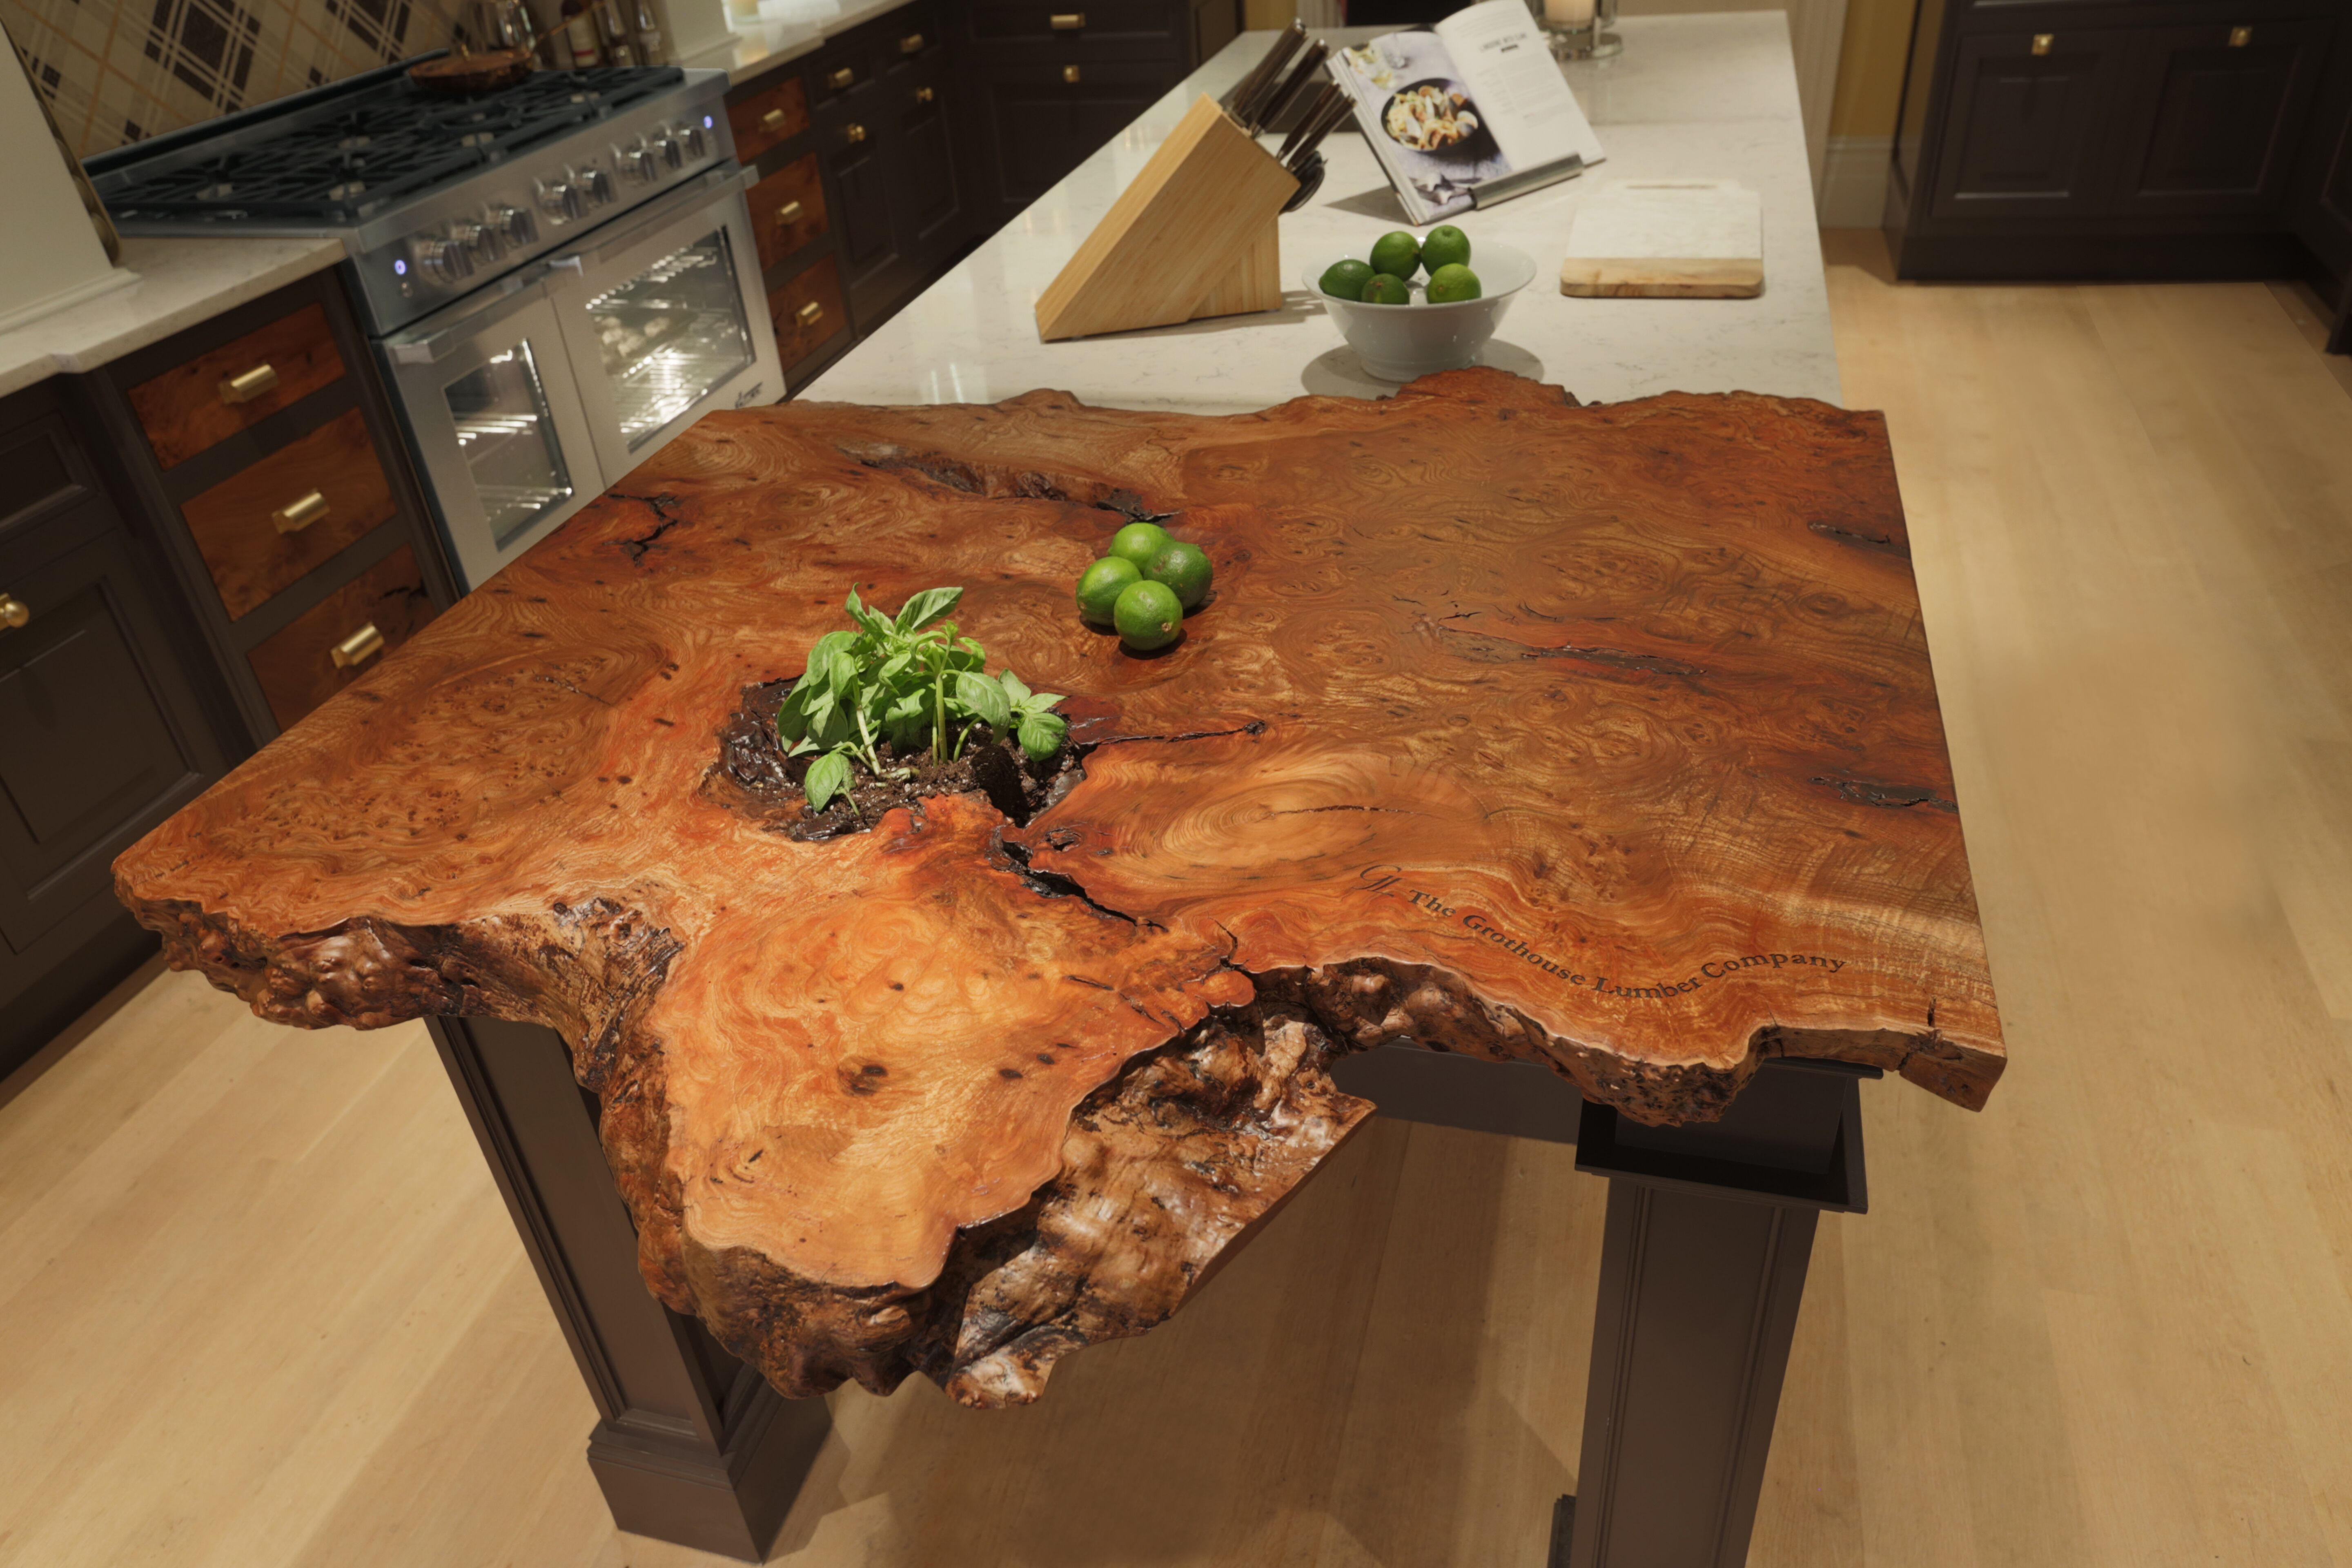 Live Edge Countertop in the 2015 Kips Bay Decorator Show House Kitchen